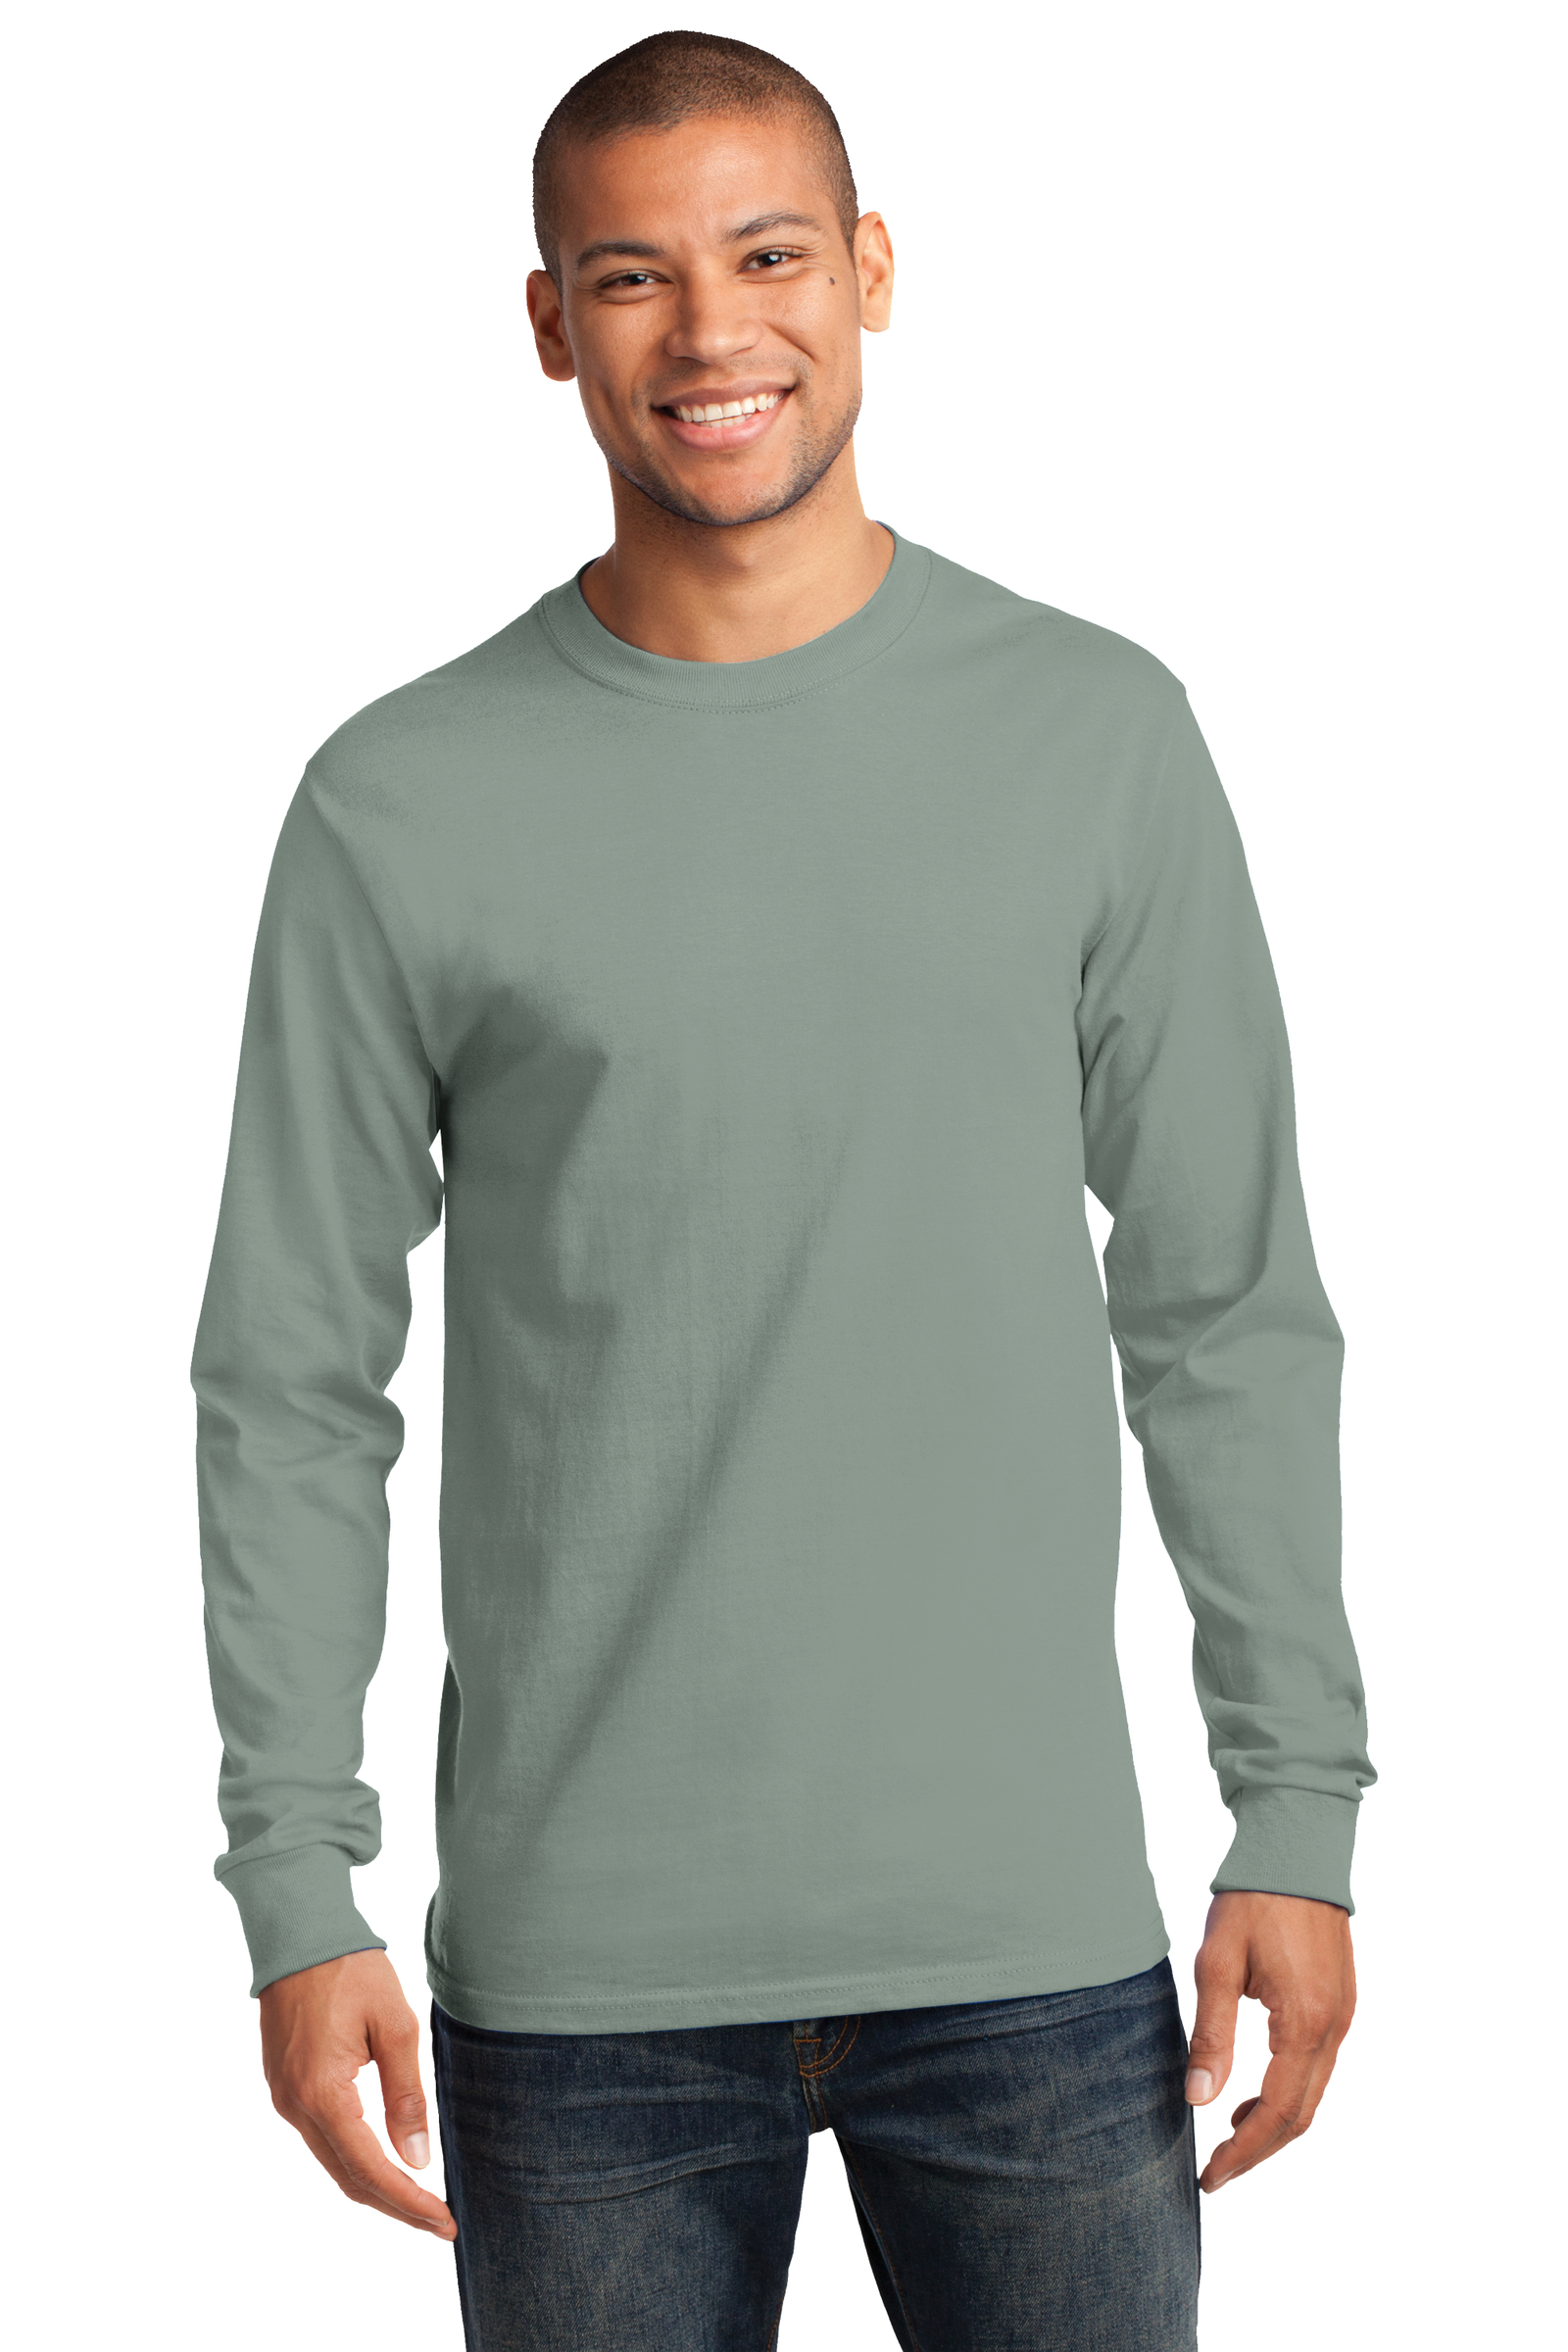 Port & Company Embroidered Men's Long Sleeve Essential Tee